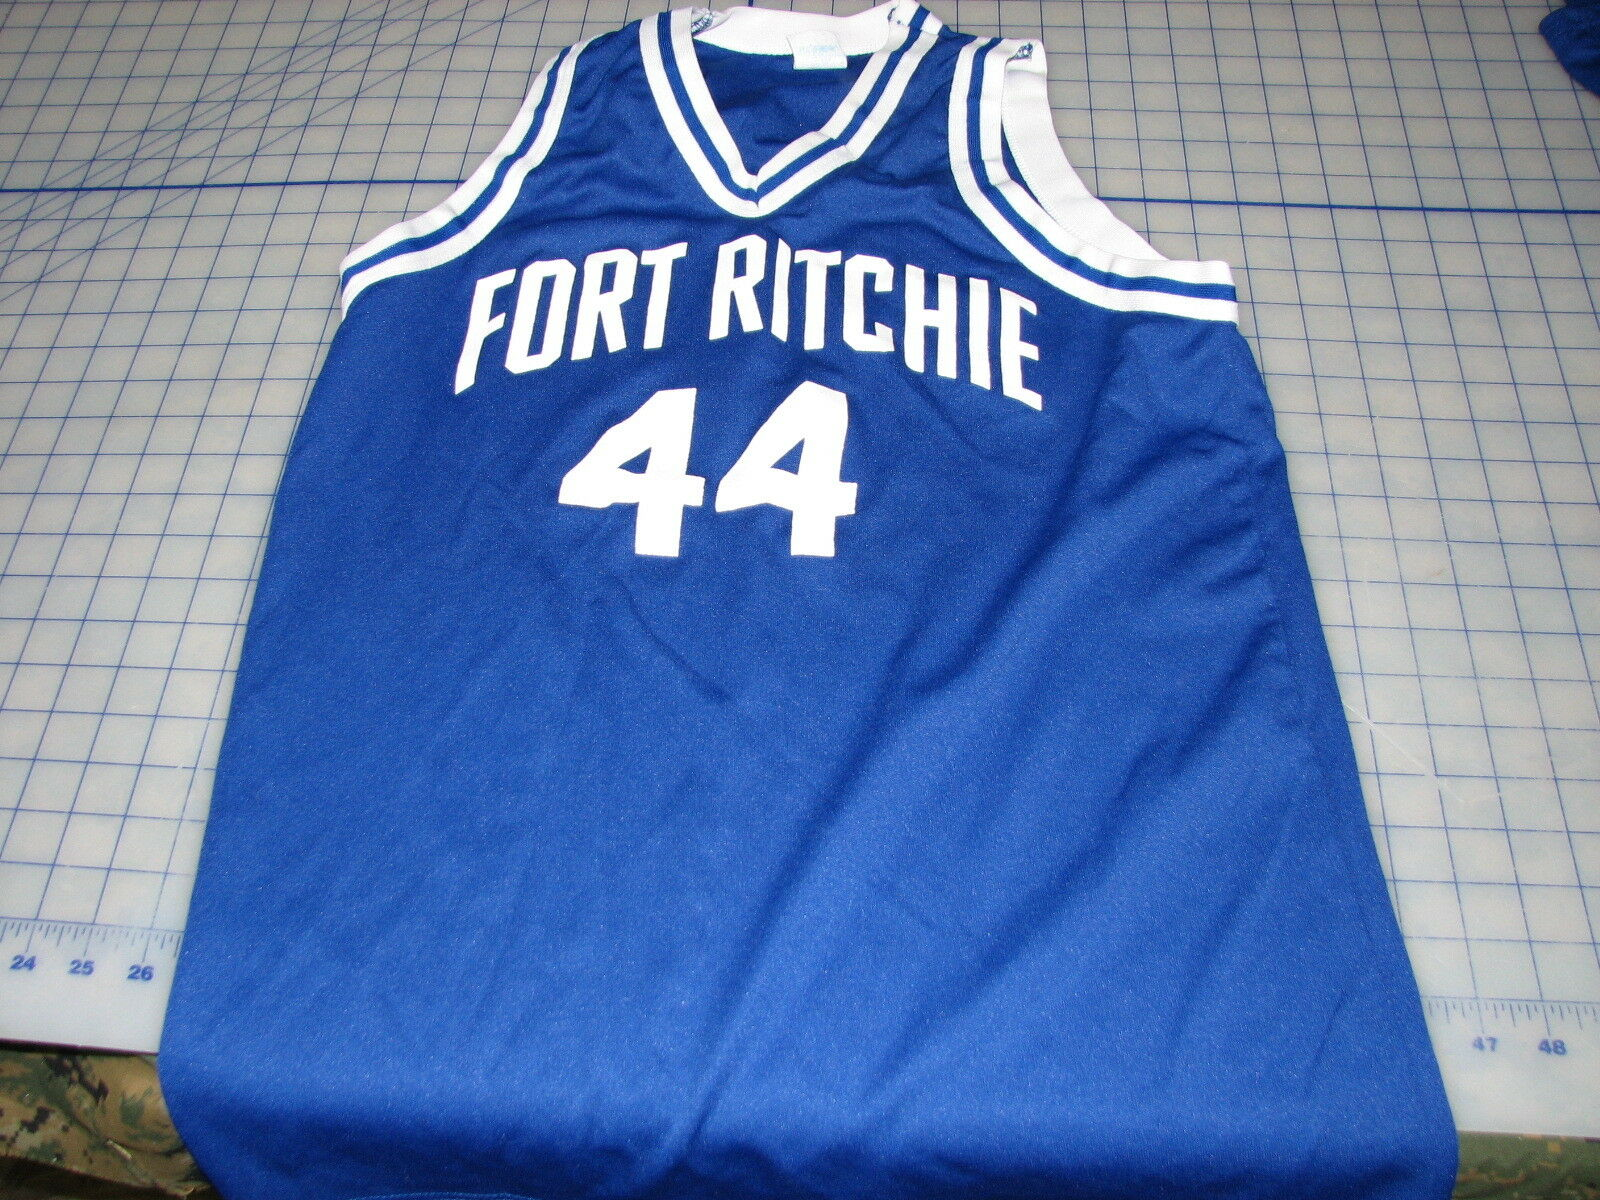 # 44 used empire sports fort ritchie jersey 100% polyester 42-44 USA blue